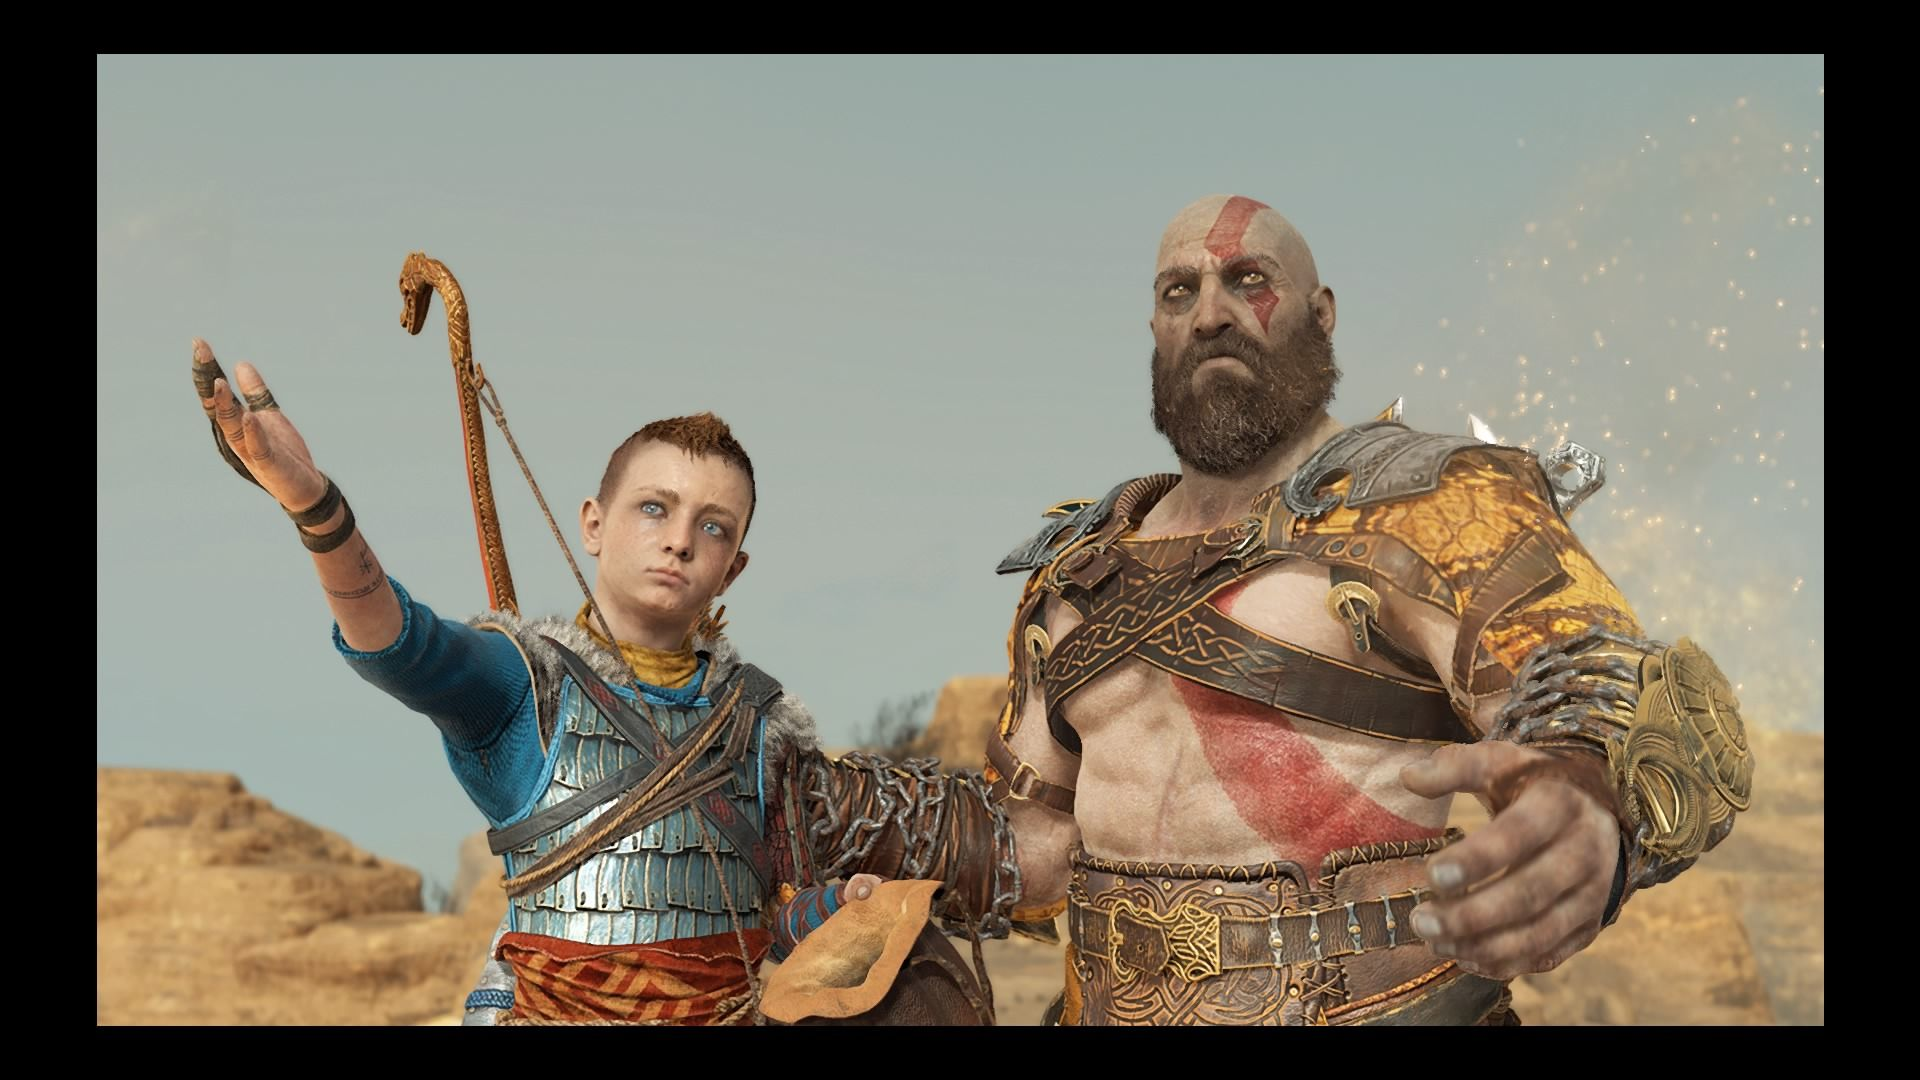 God Of War Ending Explained Who Is Atreus Mother The Serpent And